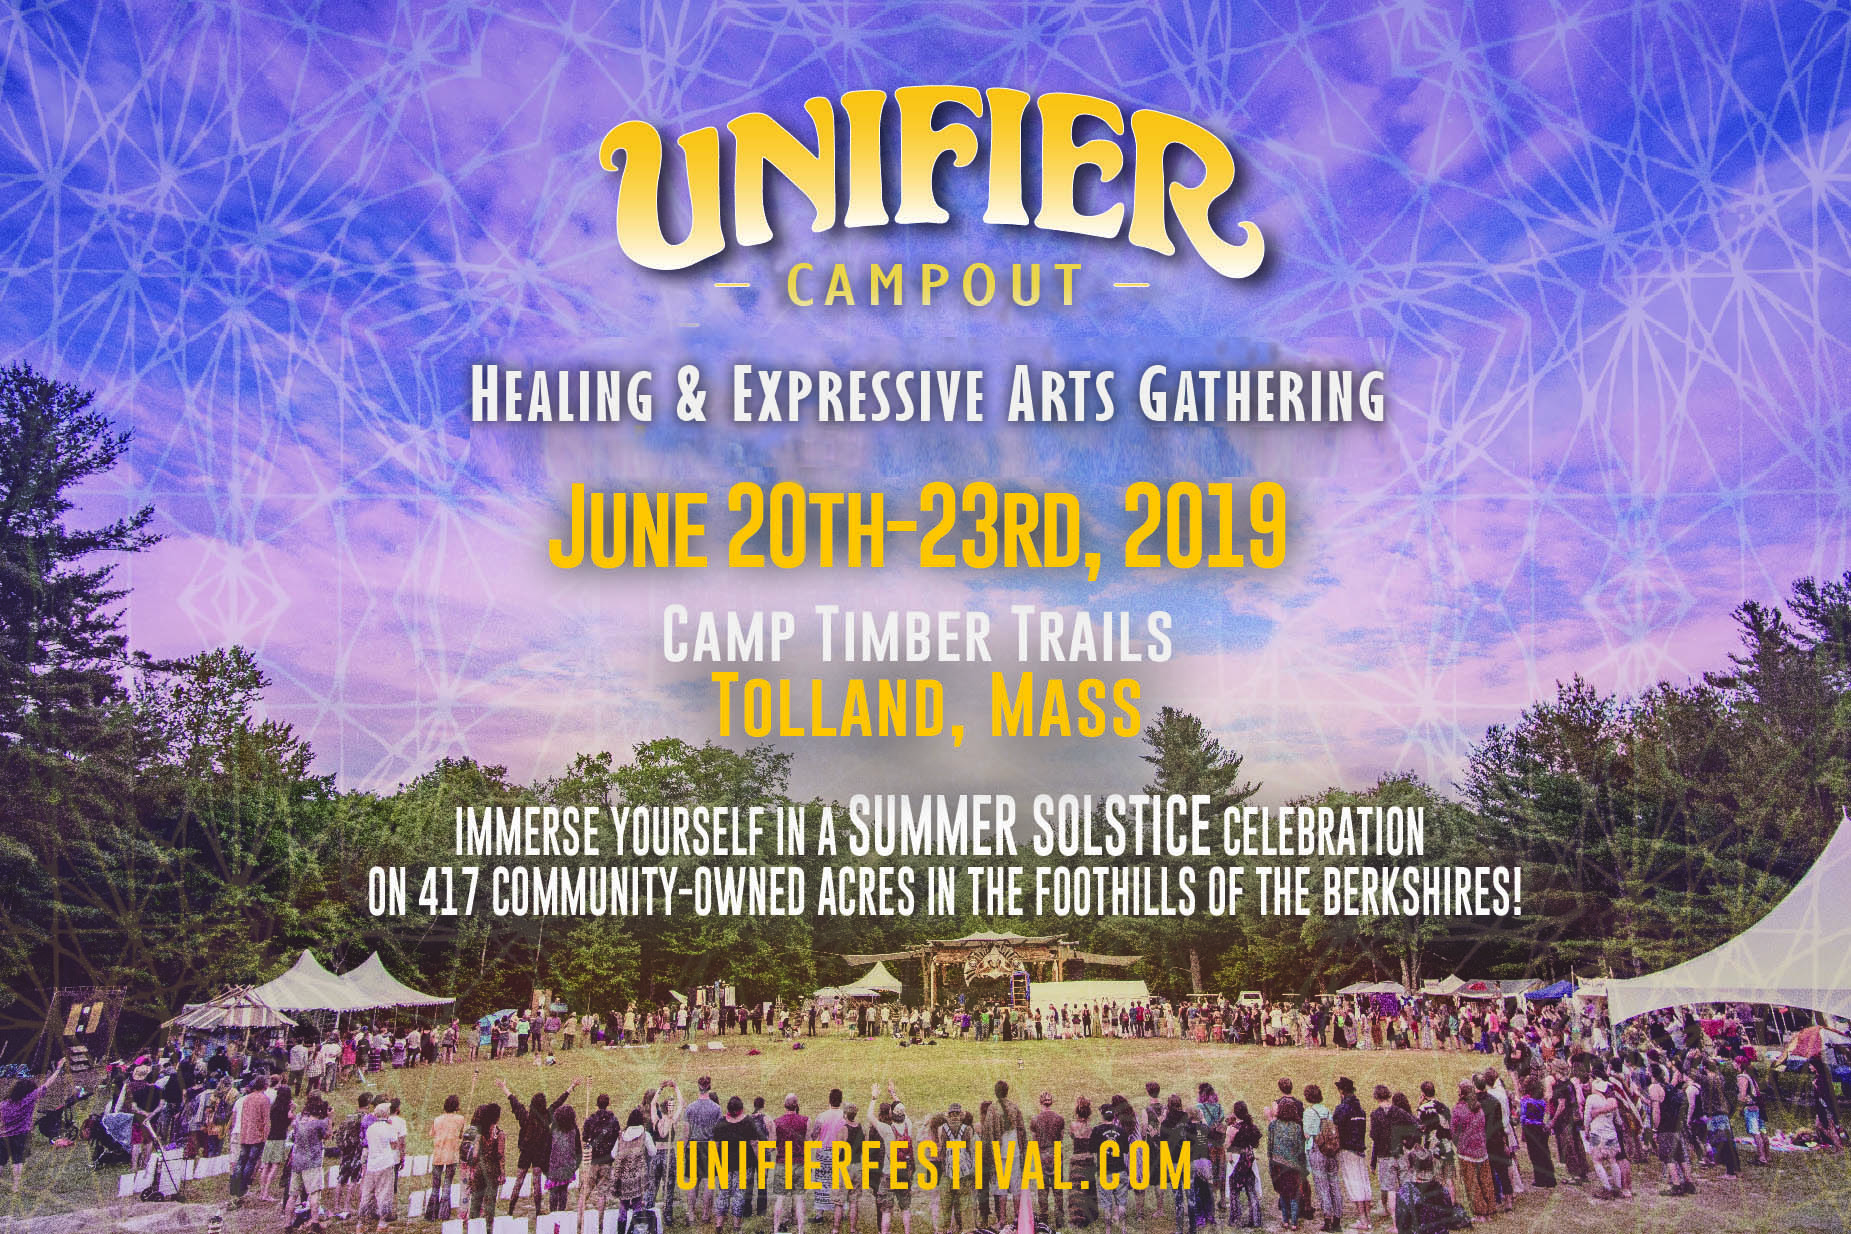 Tickets for Unifier Campout 2019 in Tolland from BrightStar Live Events